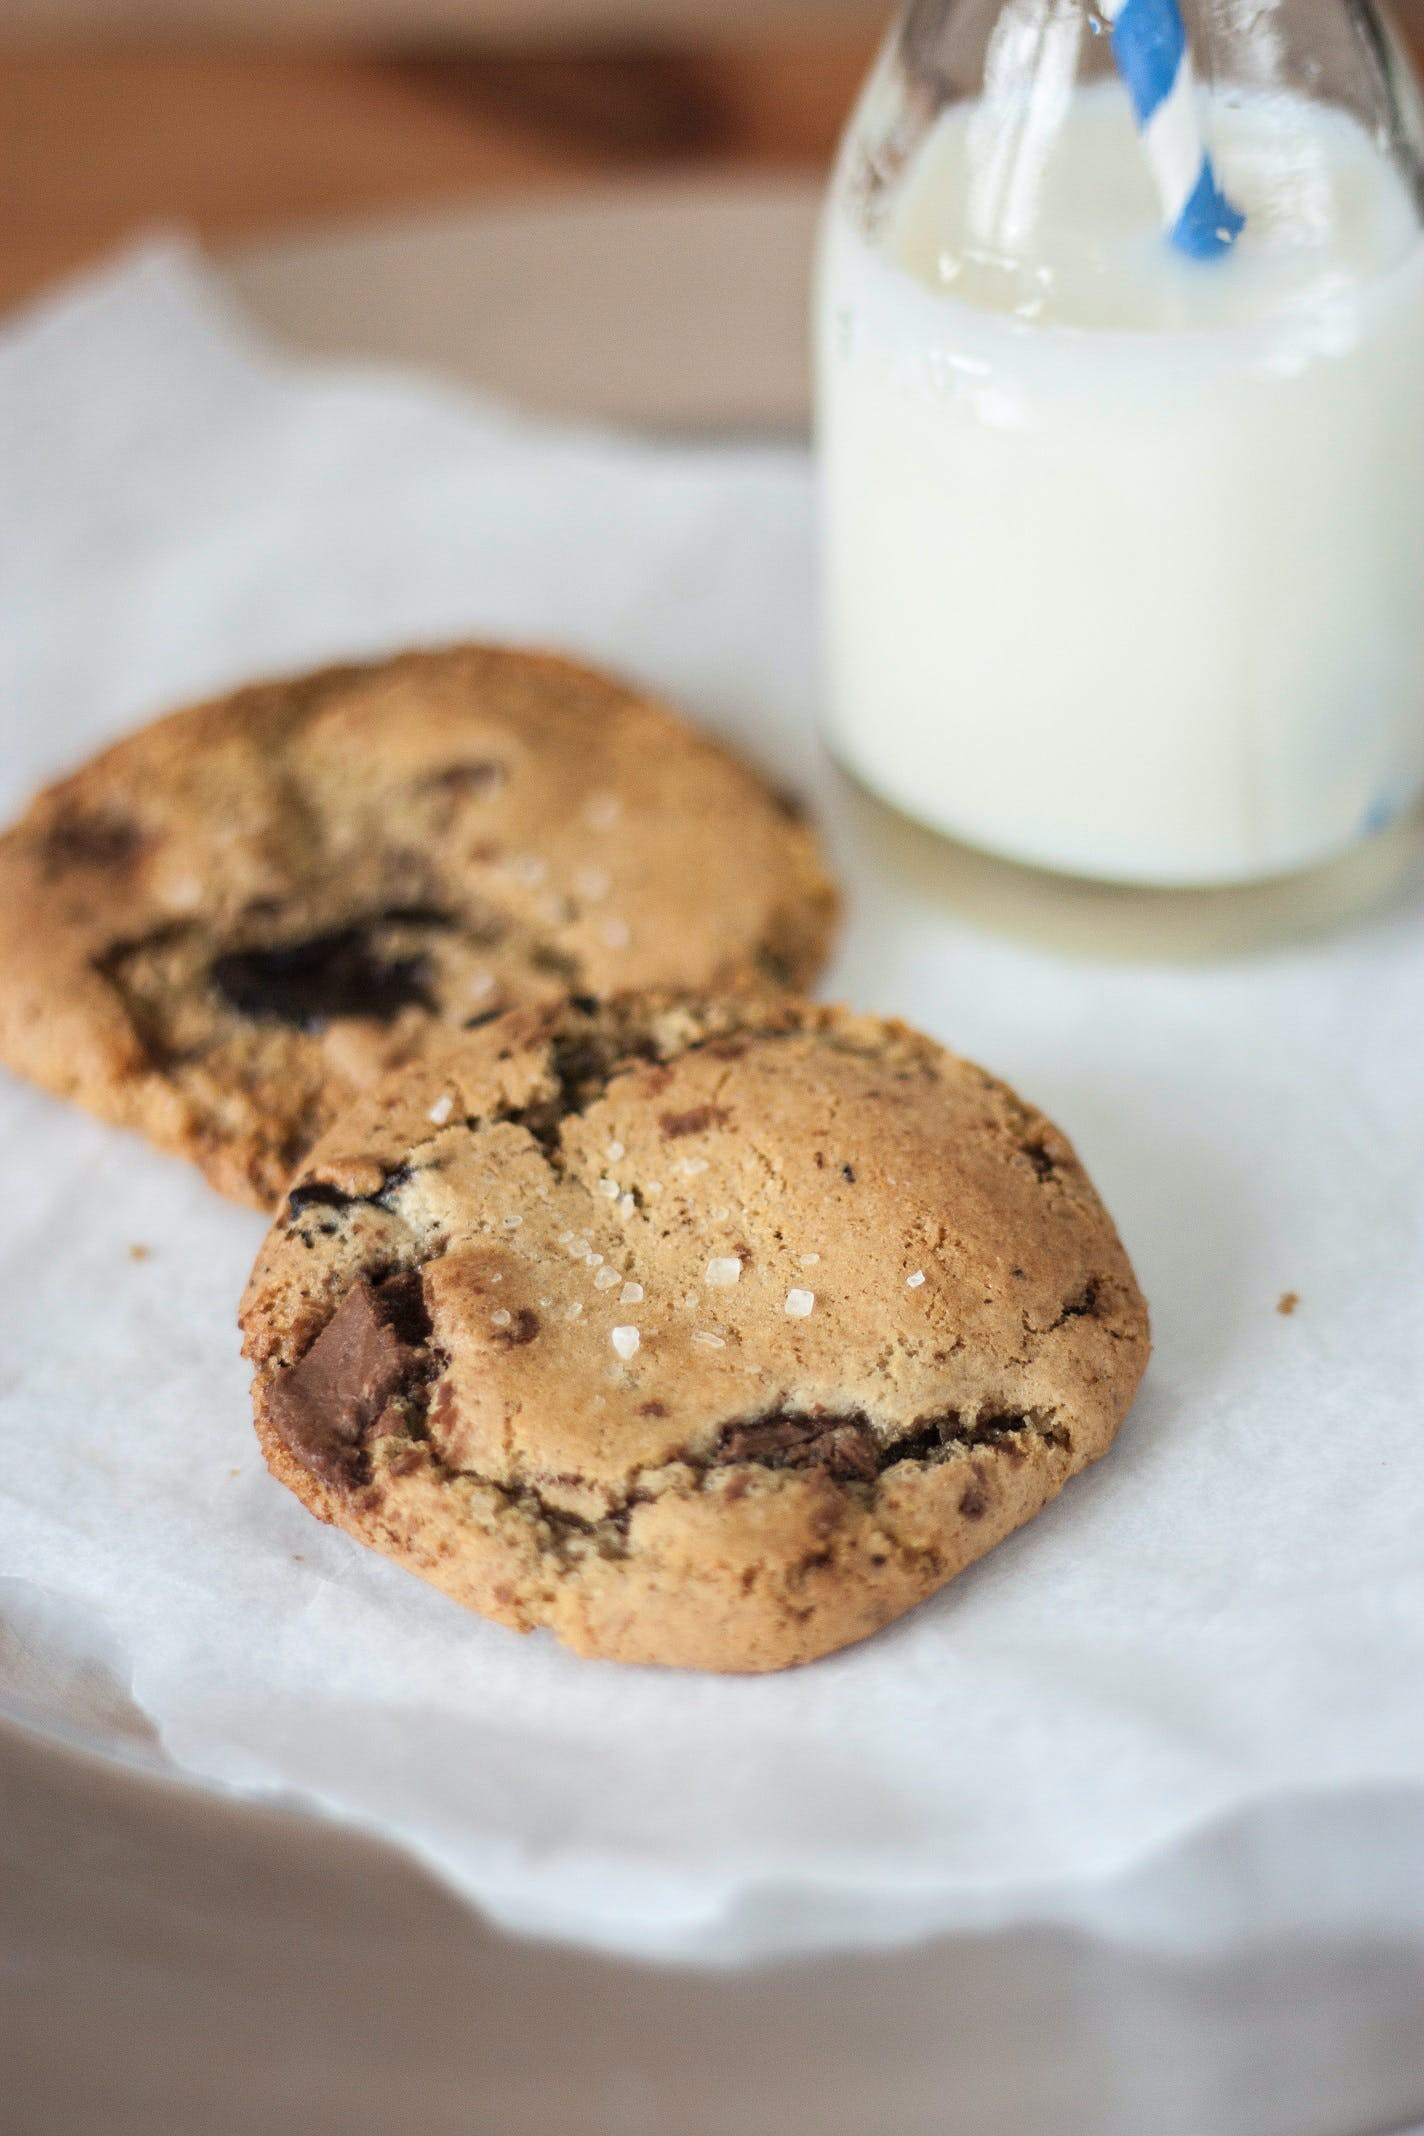 Two Baked Cookies